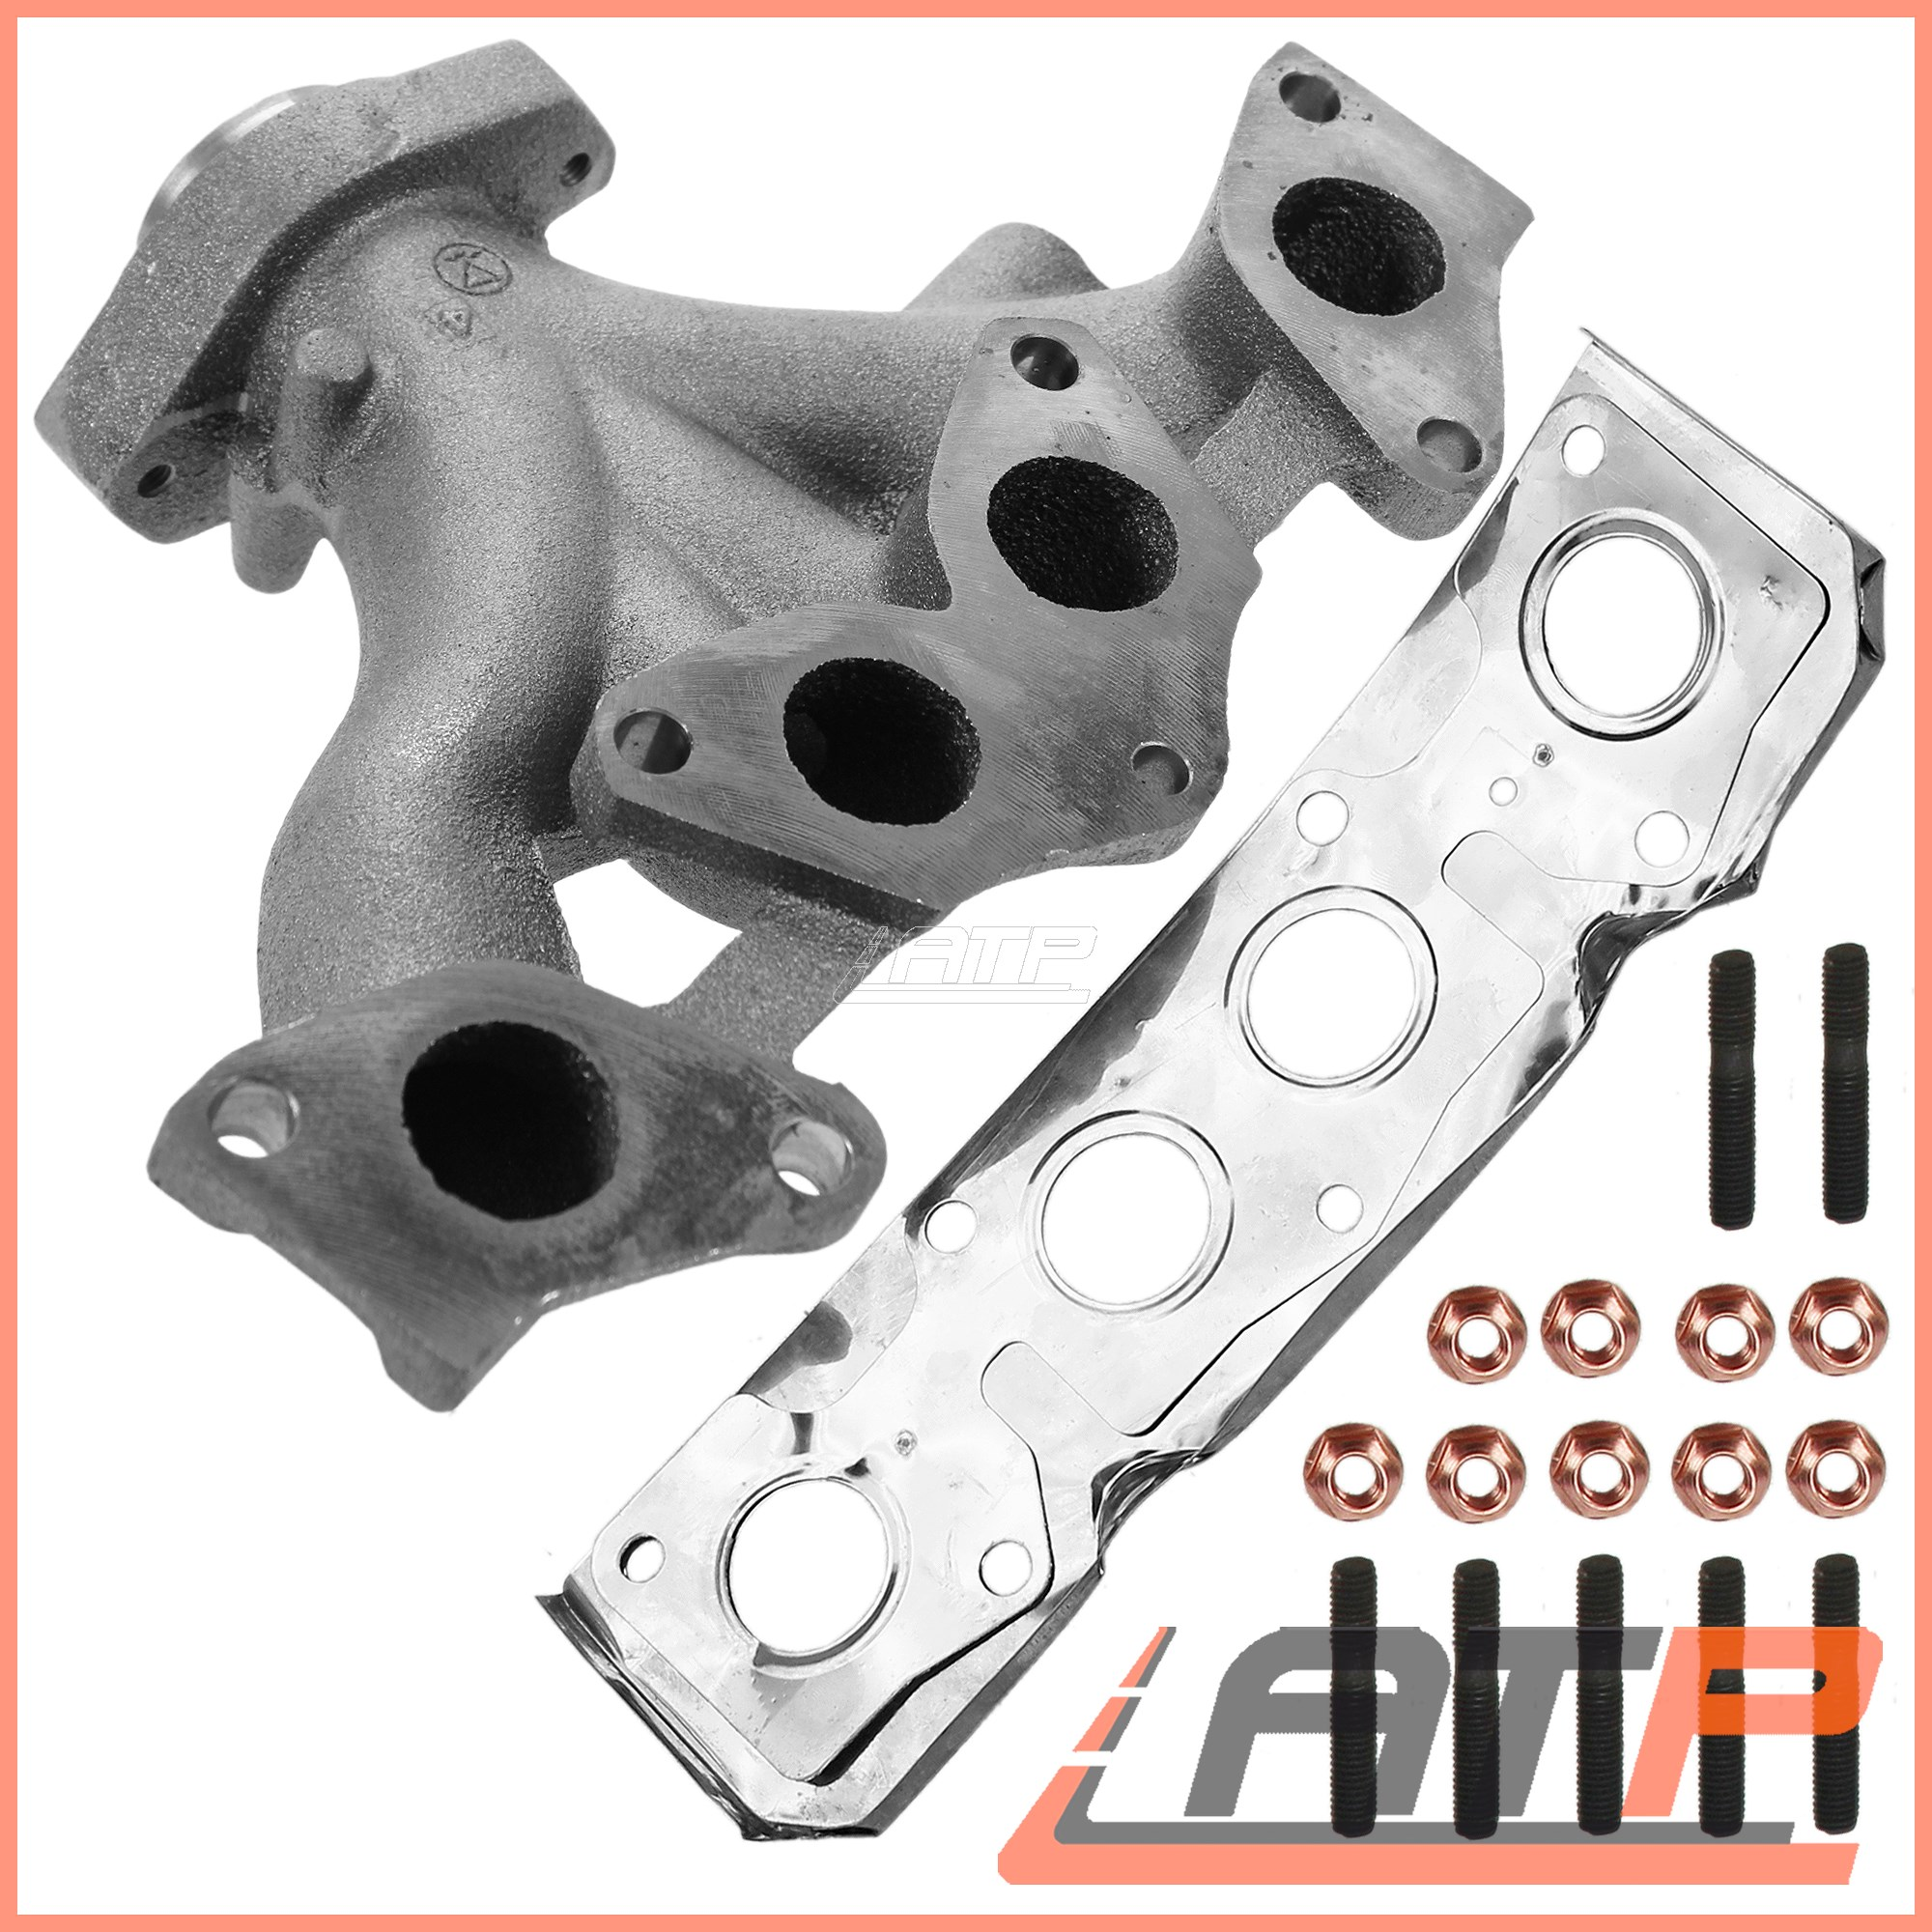 EXHAUST-MANIFOLD-WITH-STAY-BOLTS-NUTS-GASKET-SEAL-32668823